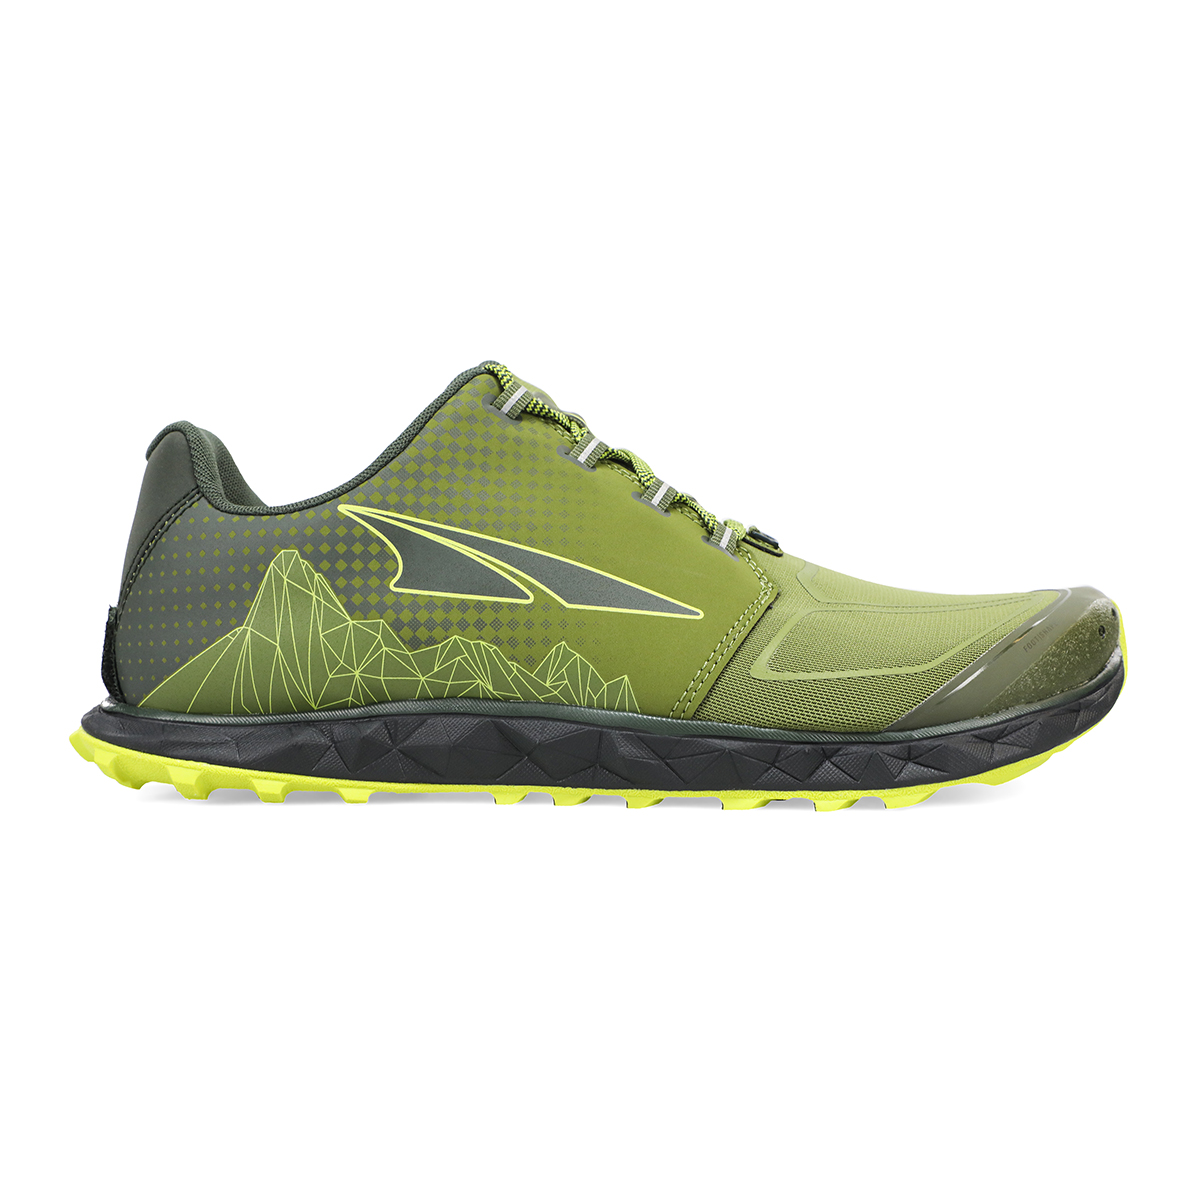 Men's Altra Superior 4.5 Trail Running Shoe - Color: Green/Lime - Size: 7 - Width: Regular, Green/Lime, large, image 1